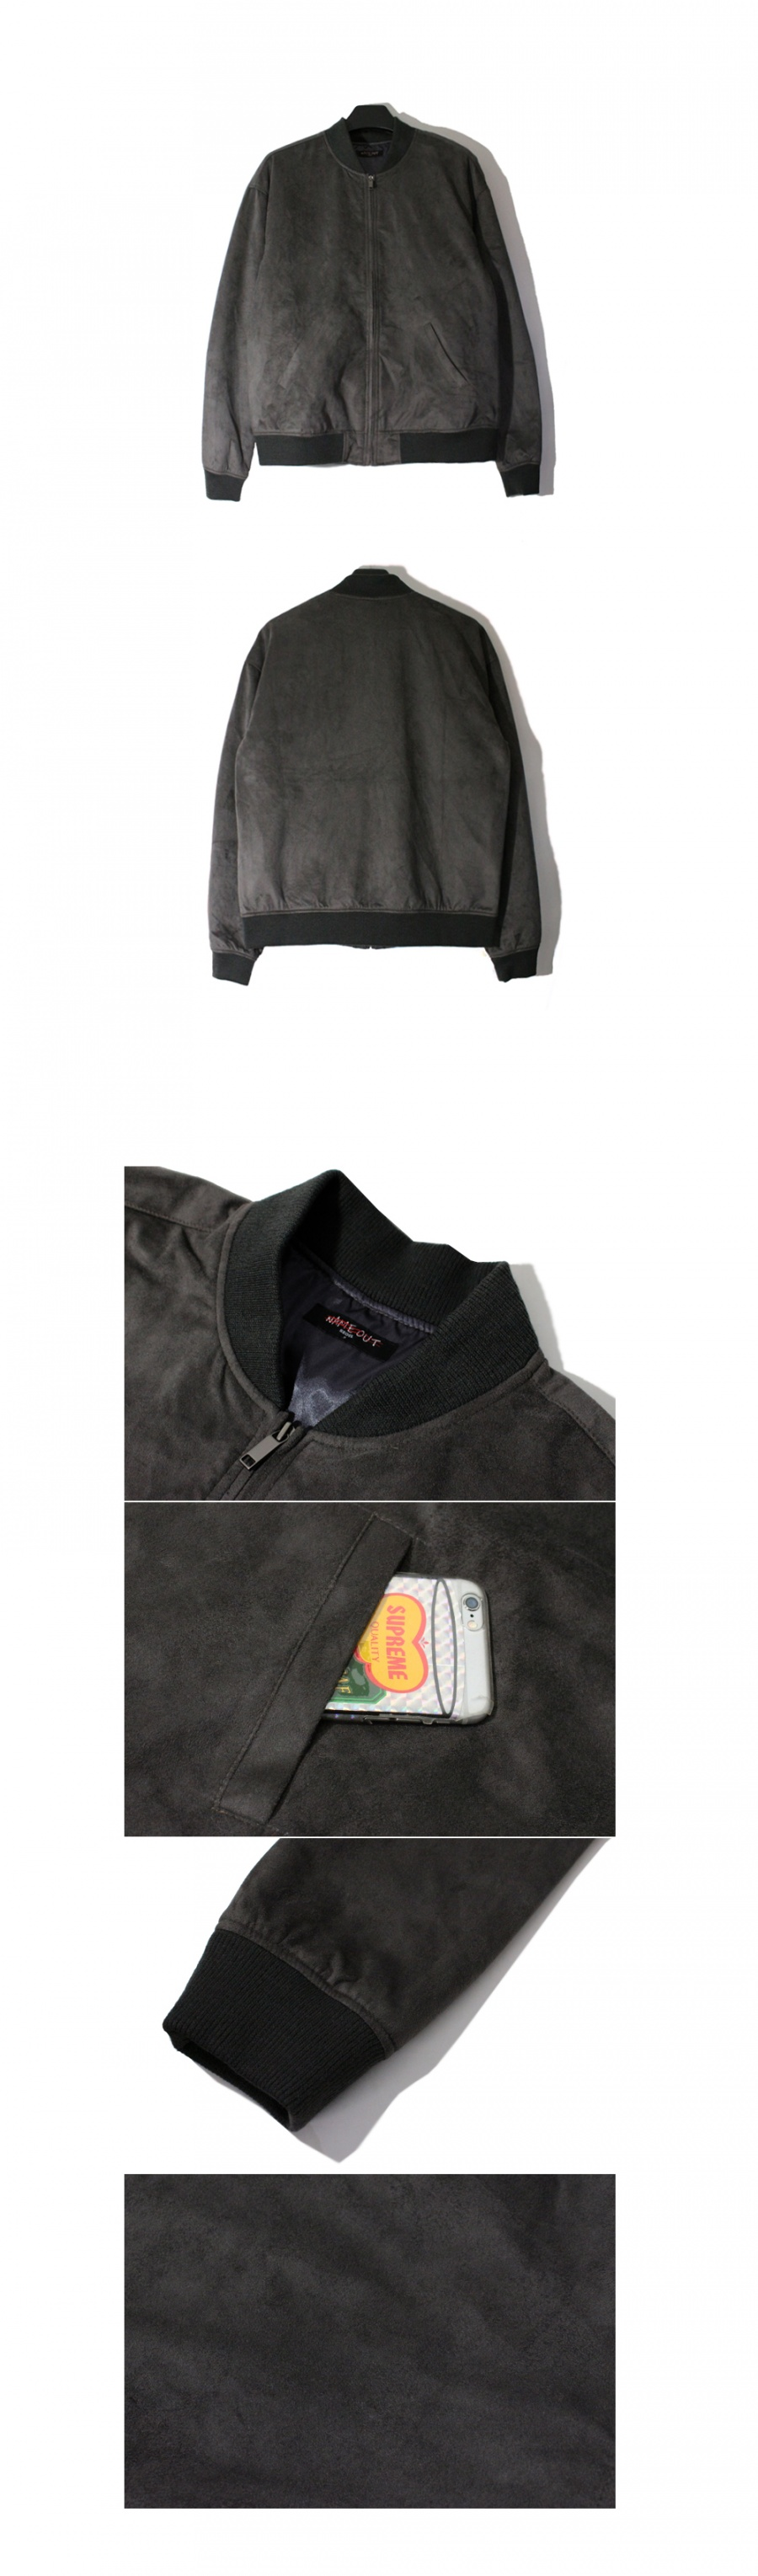 네임아웃(NAMEOUT) Oversized Suede Blouson Jacket - Charcoal